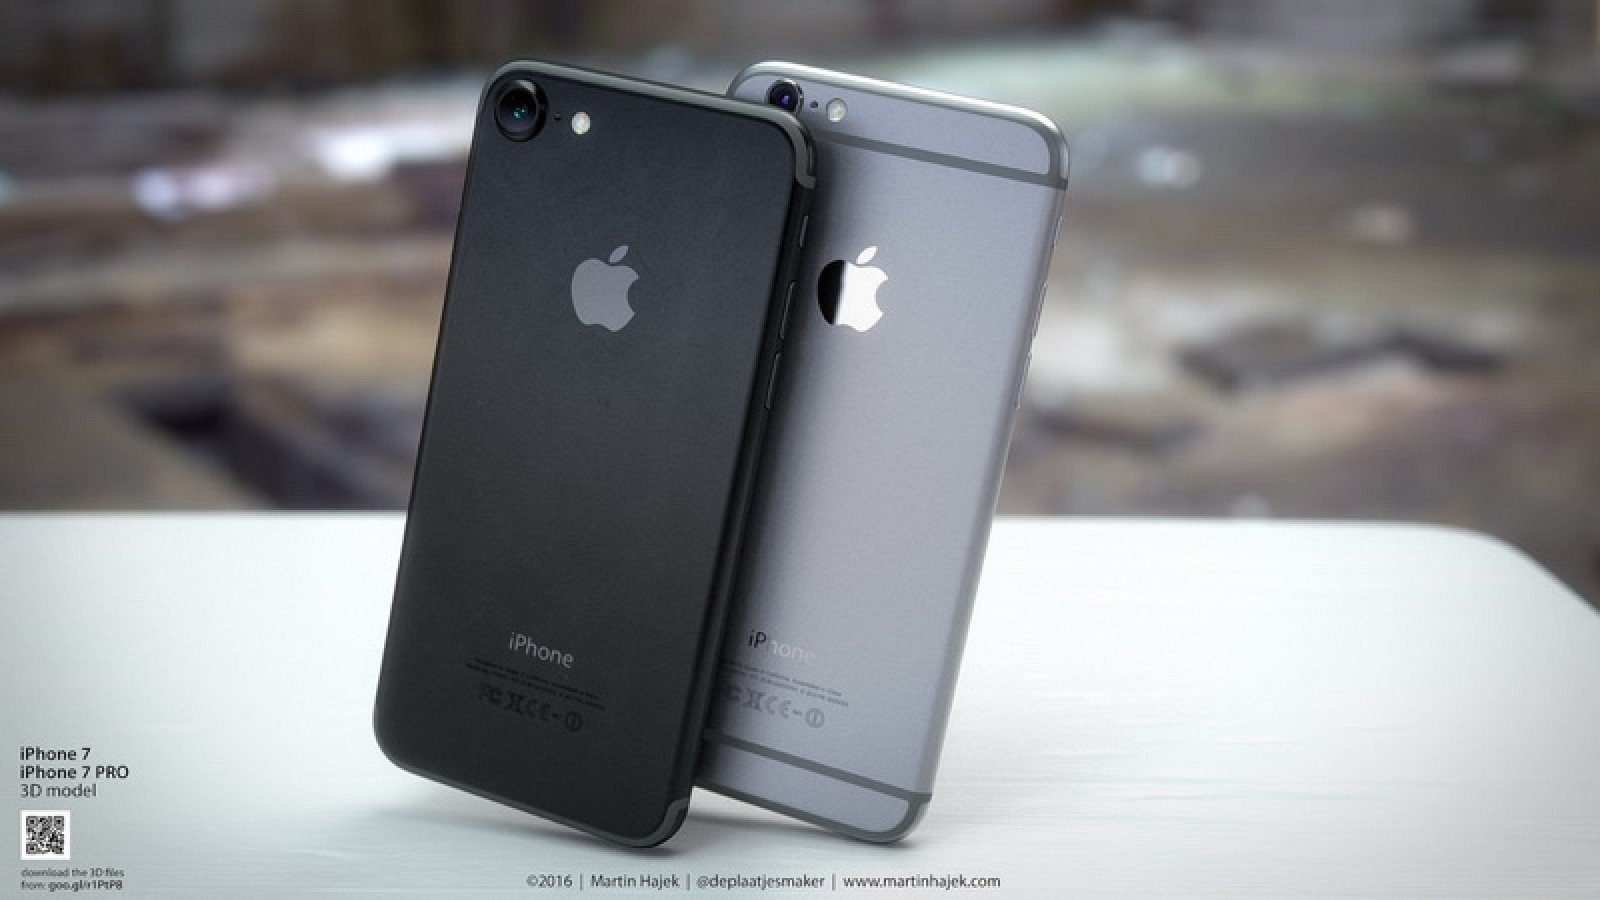 darkspacegrayiphone72 Sarà così iPhone 7 in Nero Siderale?